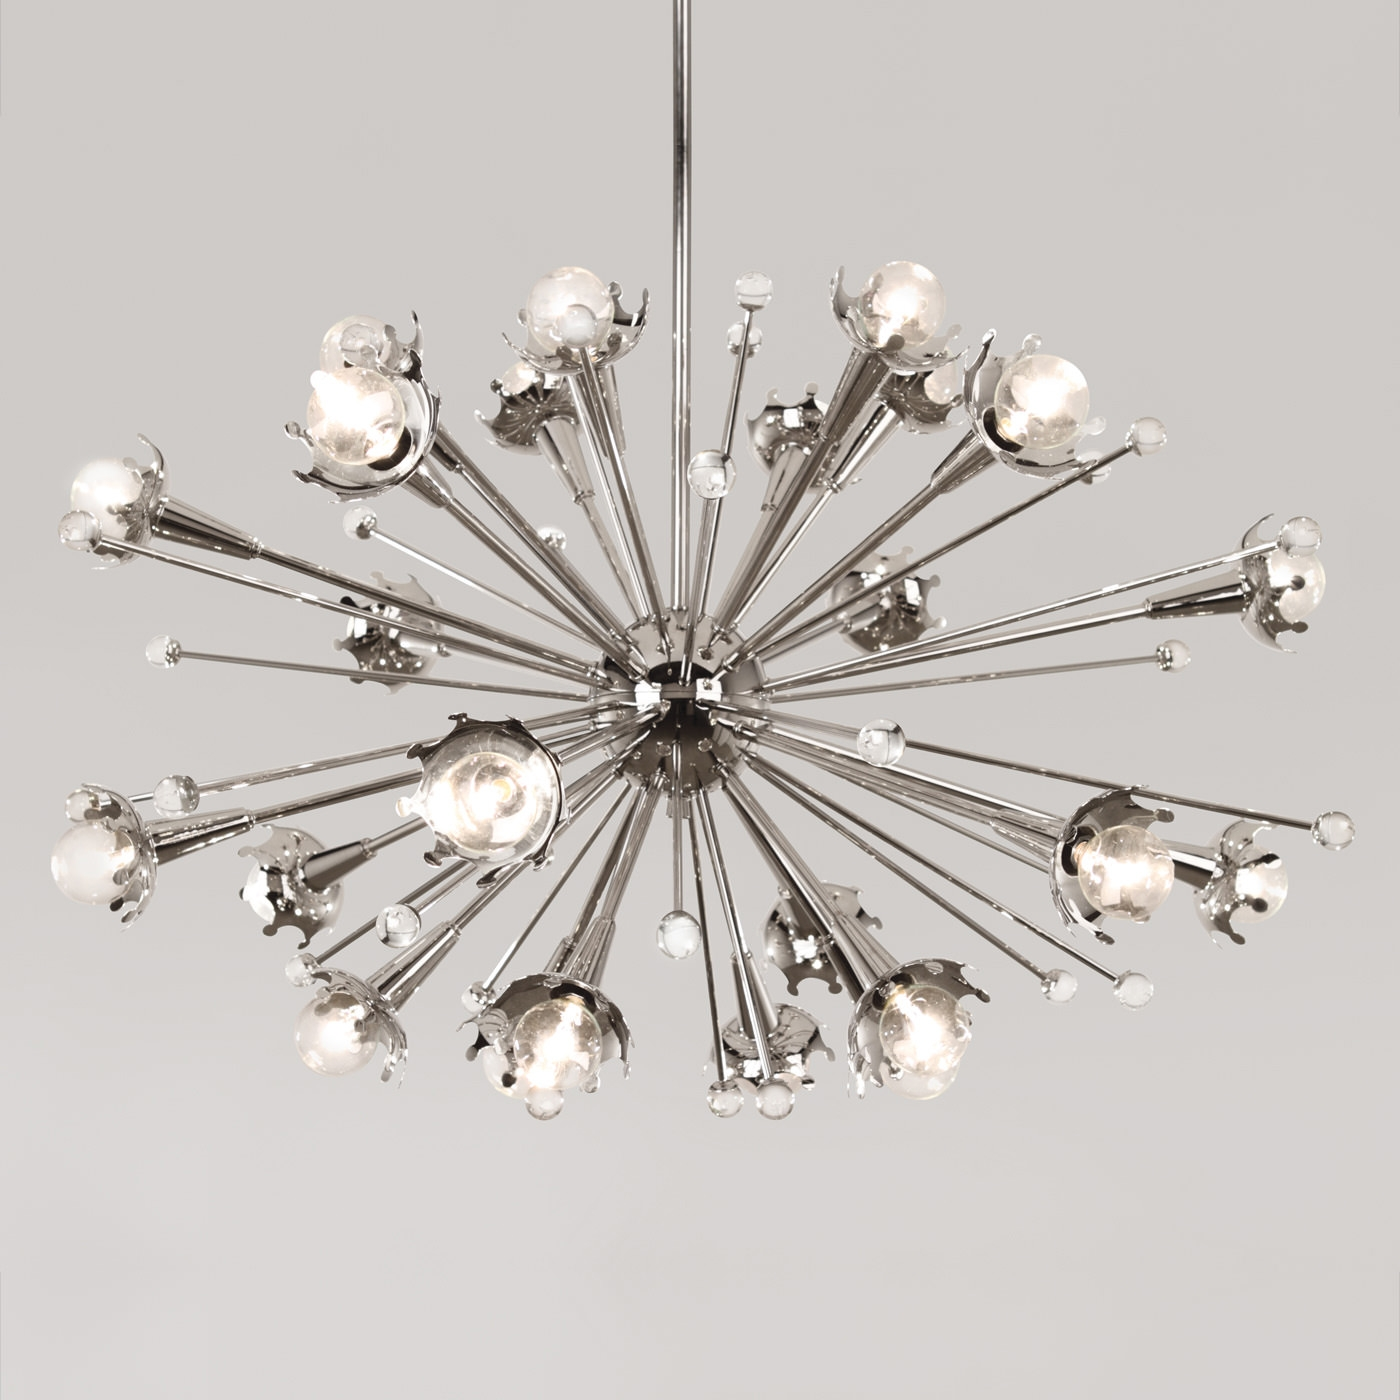 Sputnik Chandelier Modern Lighting Jonathan Adler With Mini Sputnik Chandeliers (Image 22 of 25)